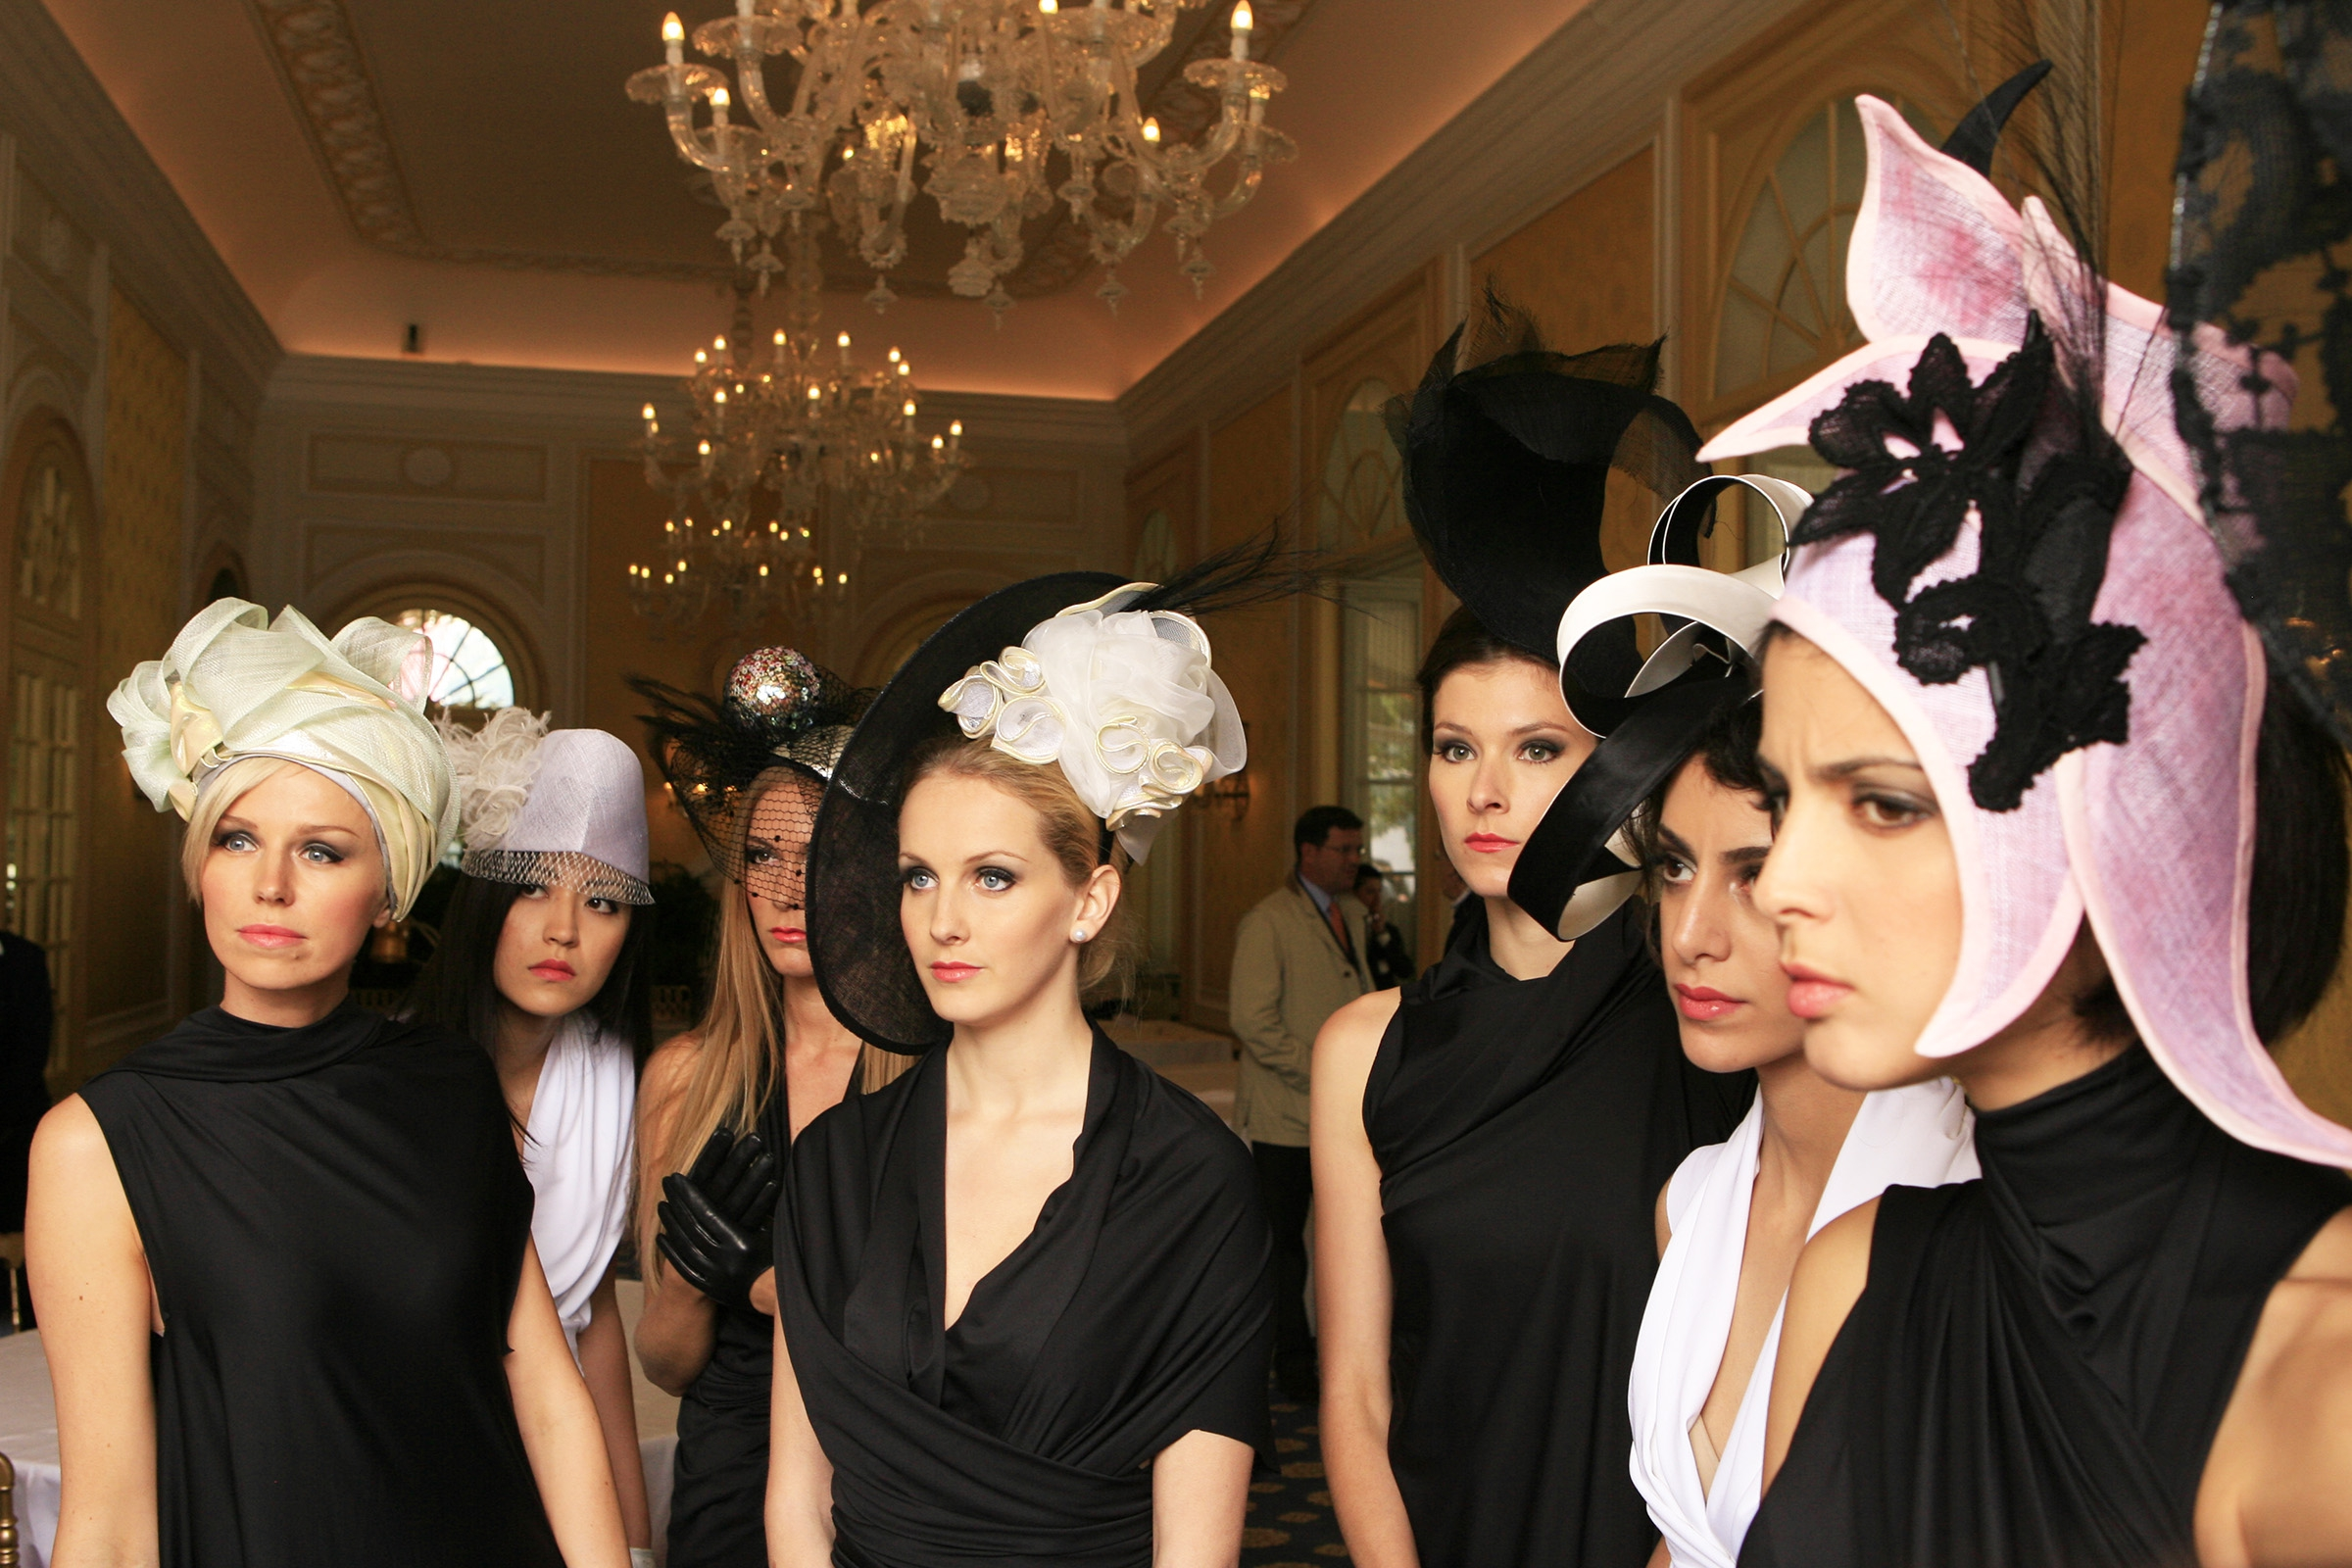 Pitlane girls for the parade Villa d'Este style by BMW